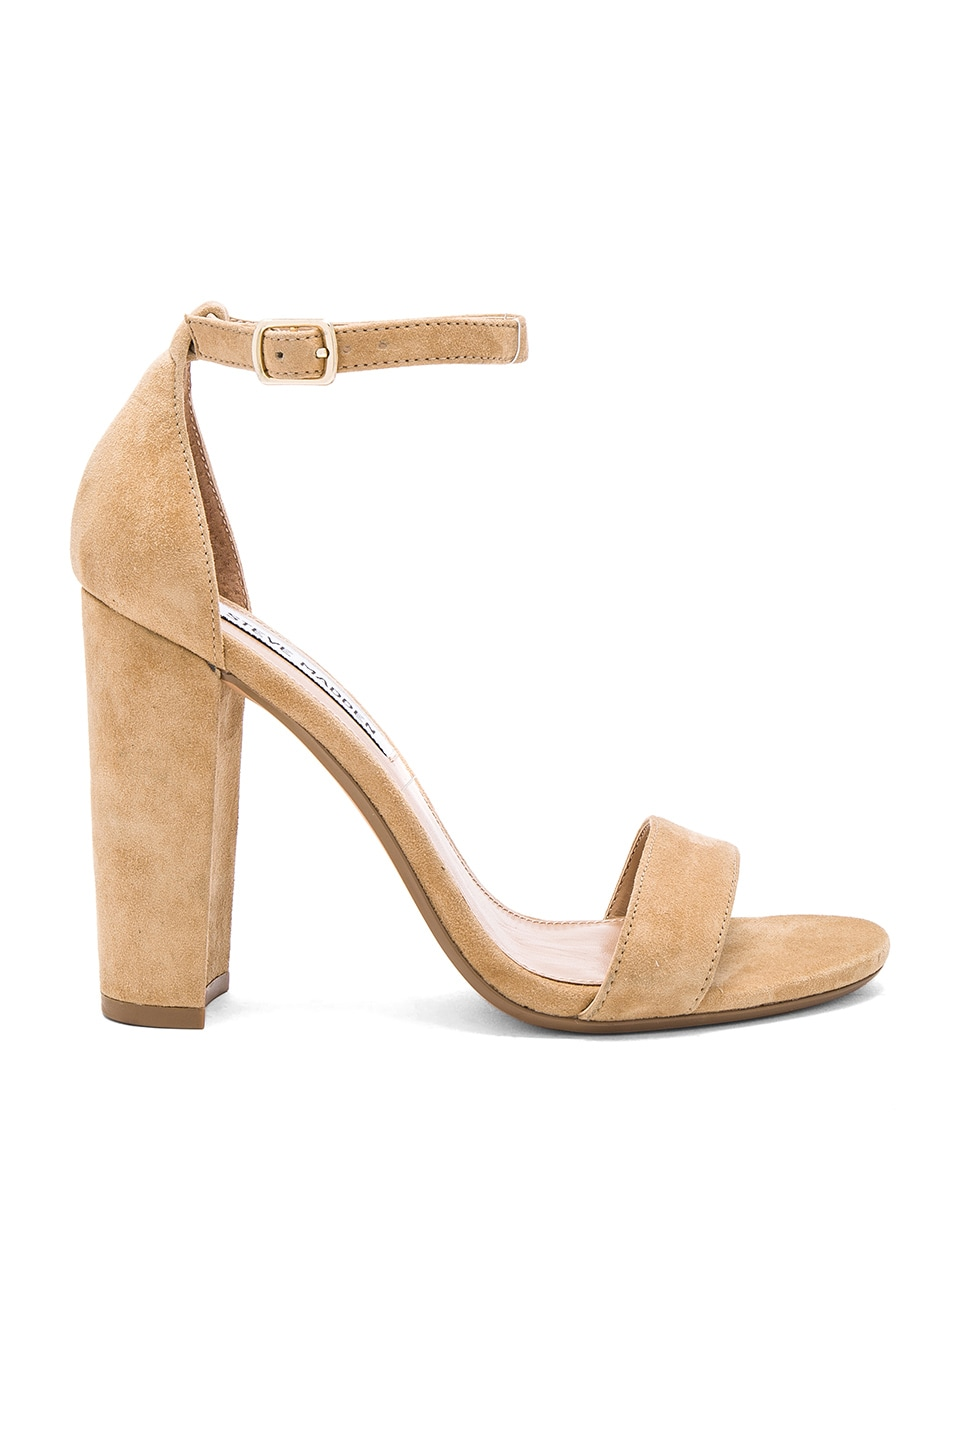 Steve Madden Carrson Heel in Sand Suede